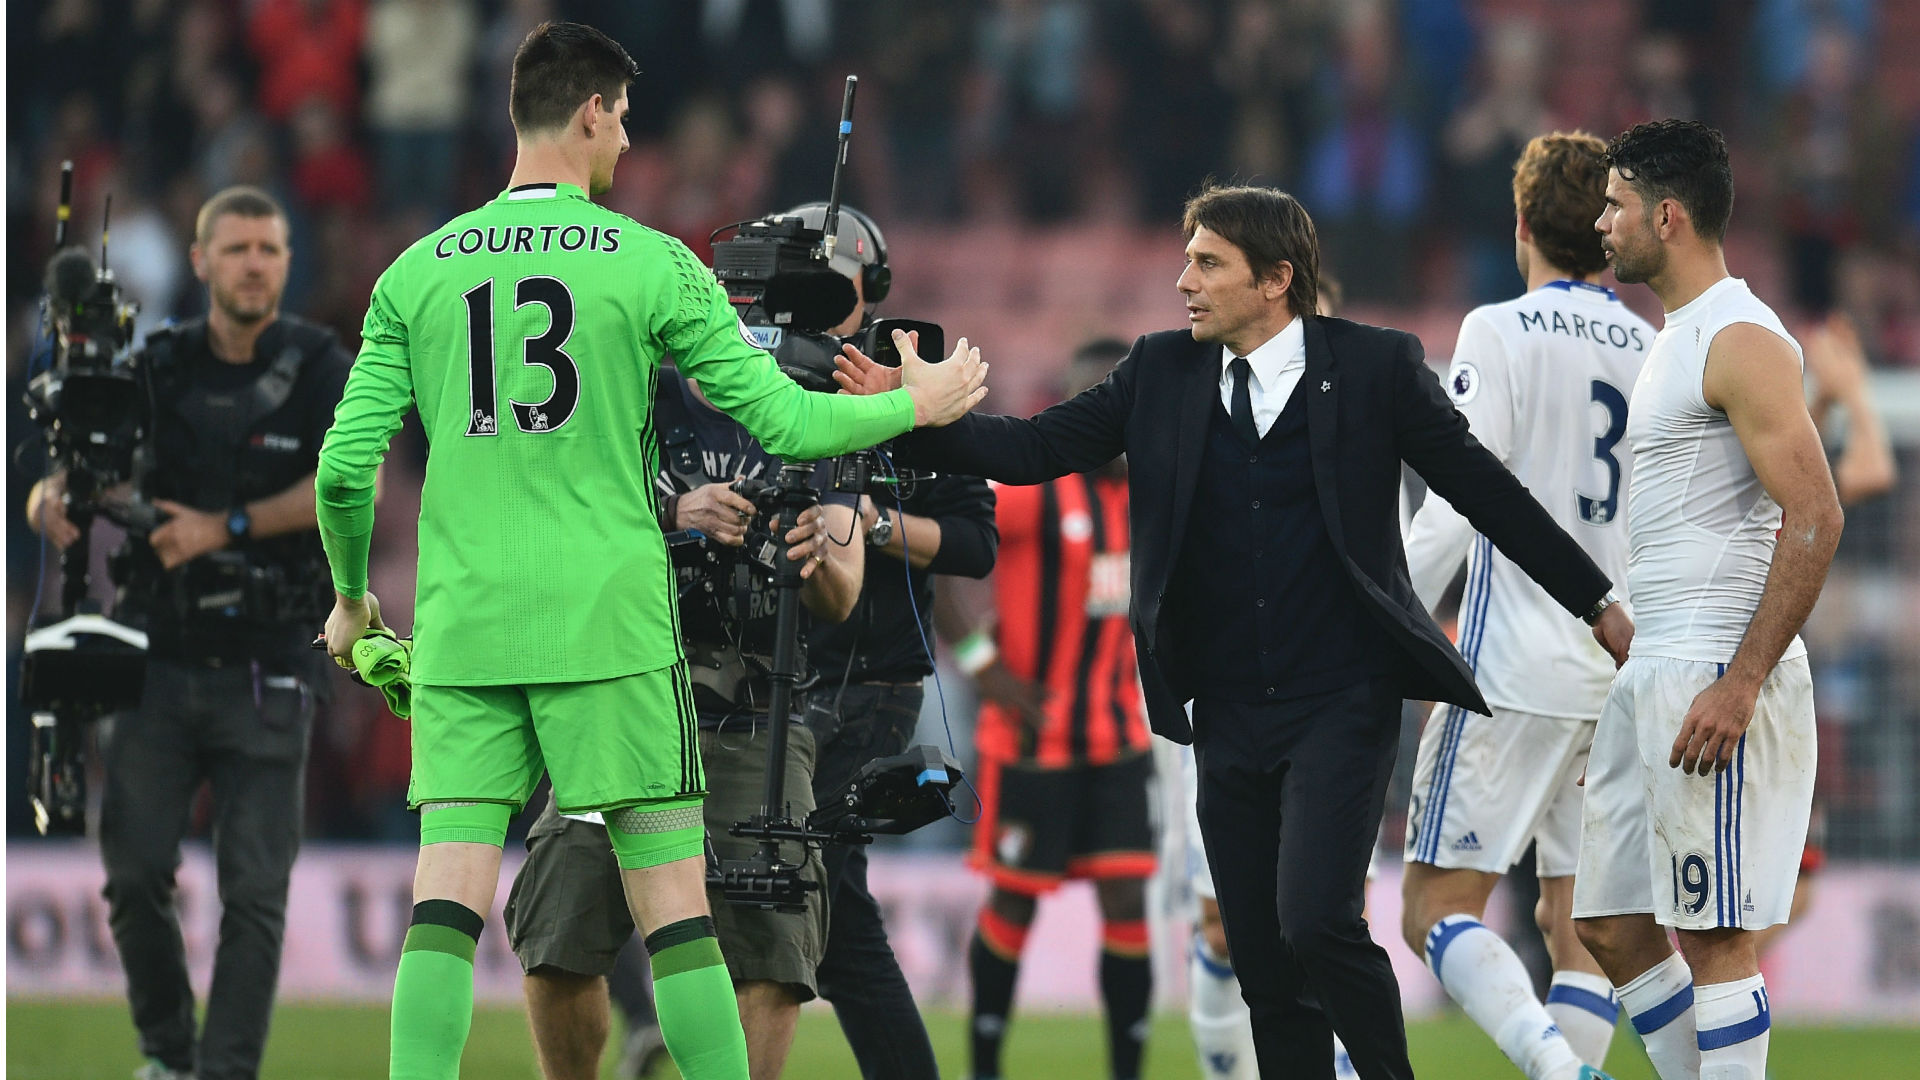 Antonio Conte urges Chelsea to tie down Thibaut Courtois